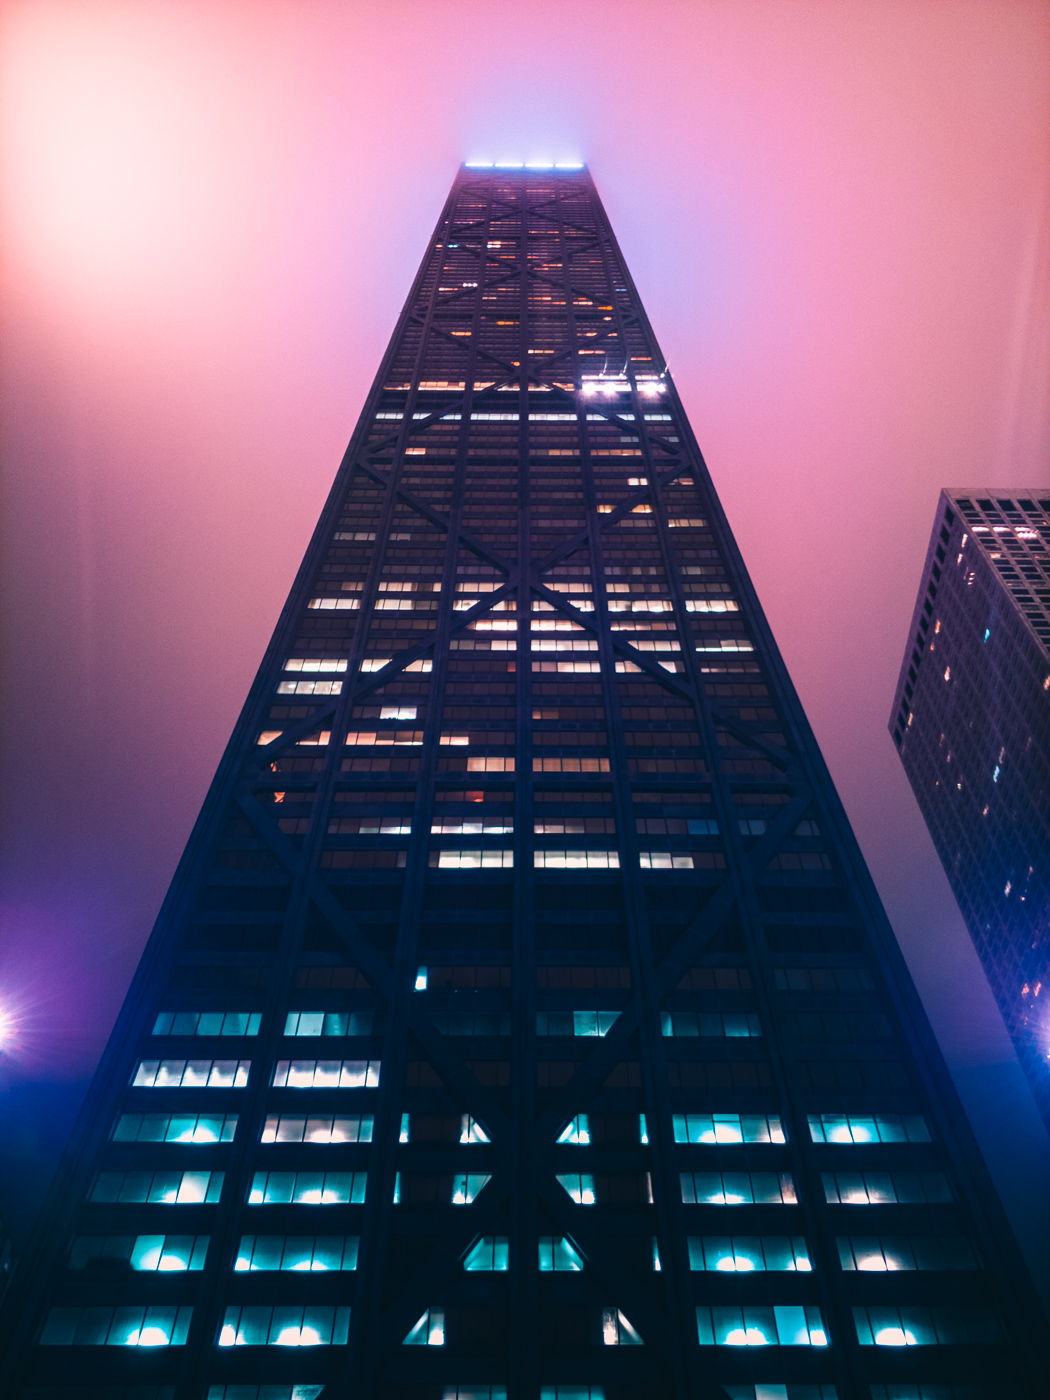 Hancock Tower, Chicago. LG V30. 15s, f/1.9, ISO 50